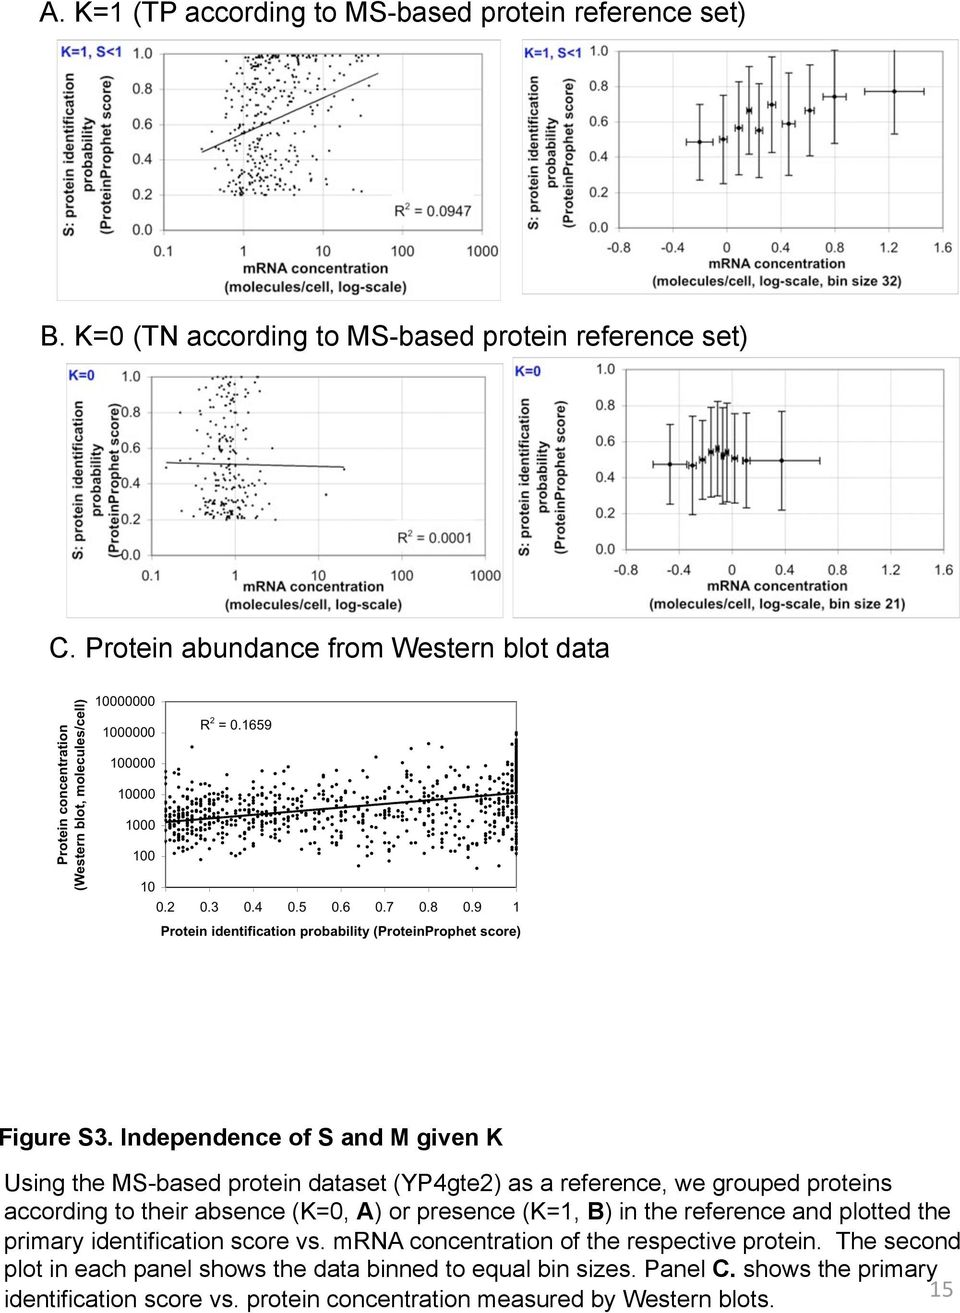 Independence of S and M given K Using the MS-based protein dataset (YP4gte2) as a reference, we grouped proteins according to their absence (K=0, A) or